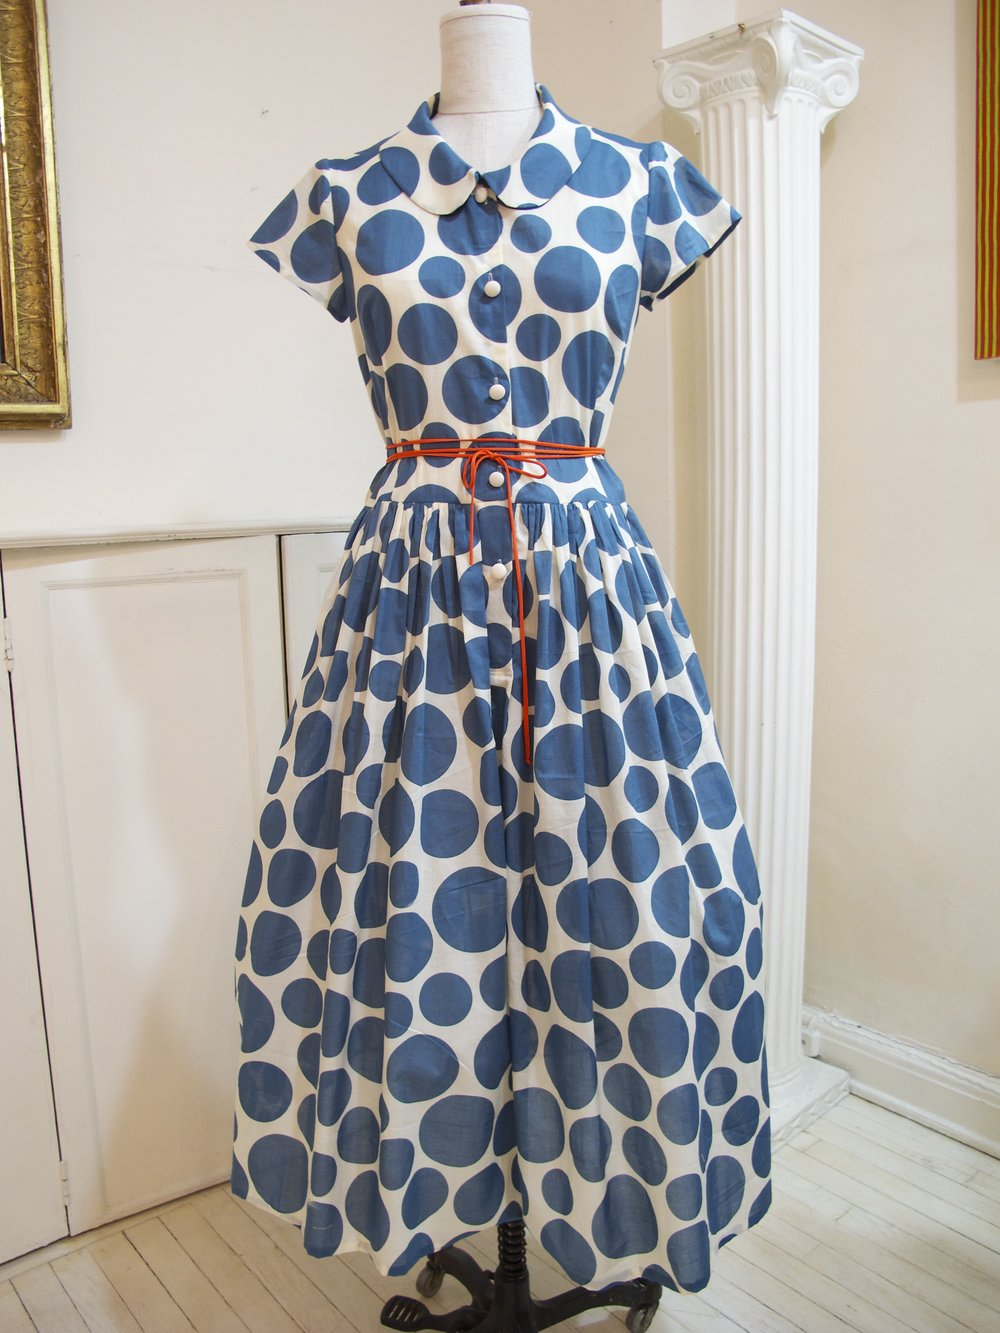 cotton voile polka-dot print shirt dress with fabric cord tie belt - sold